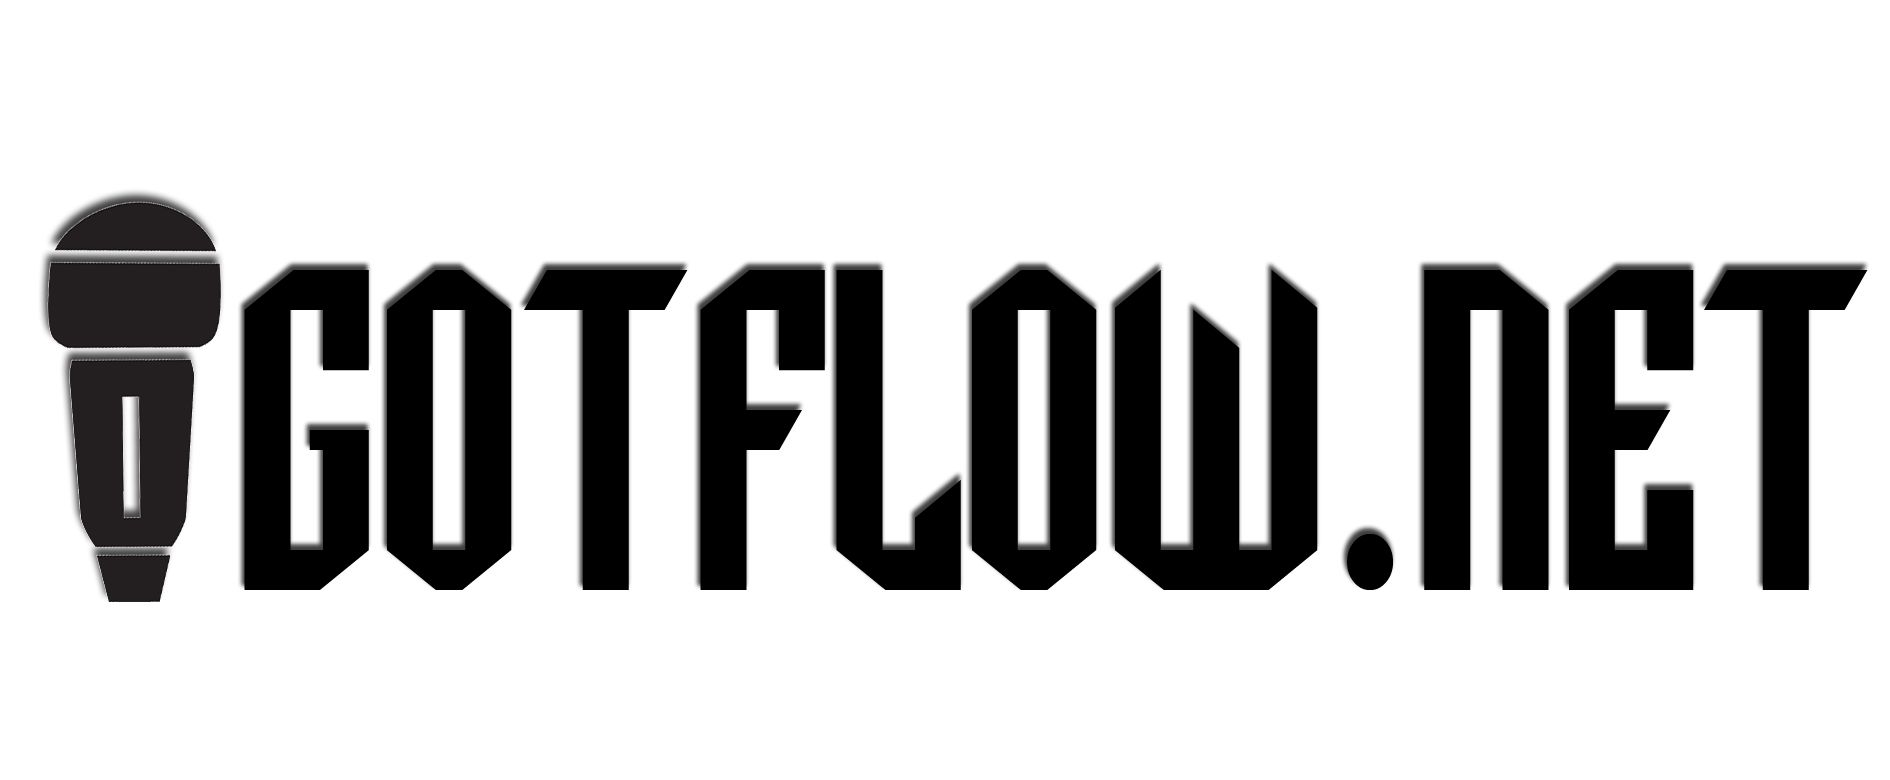 IGotFlow.net - Music, Video, and Everything Inbetween